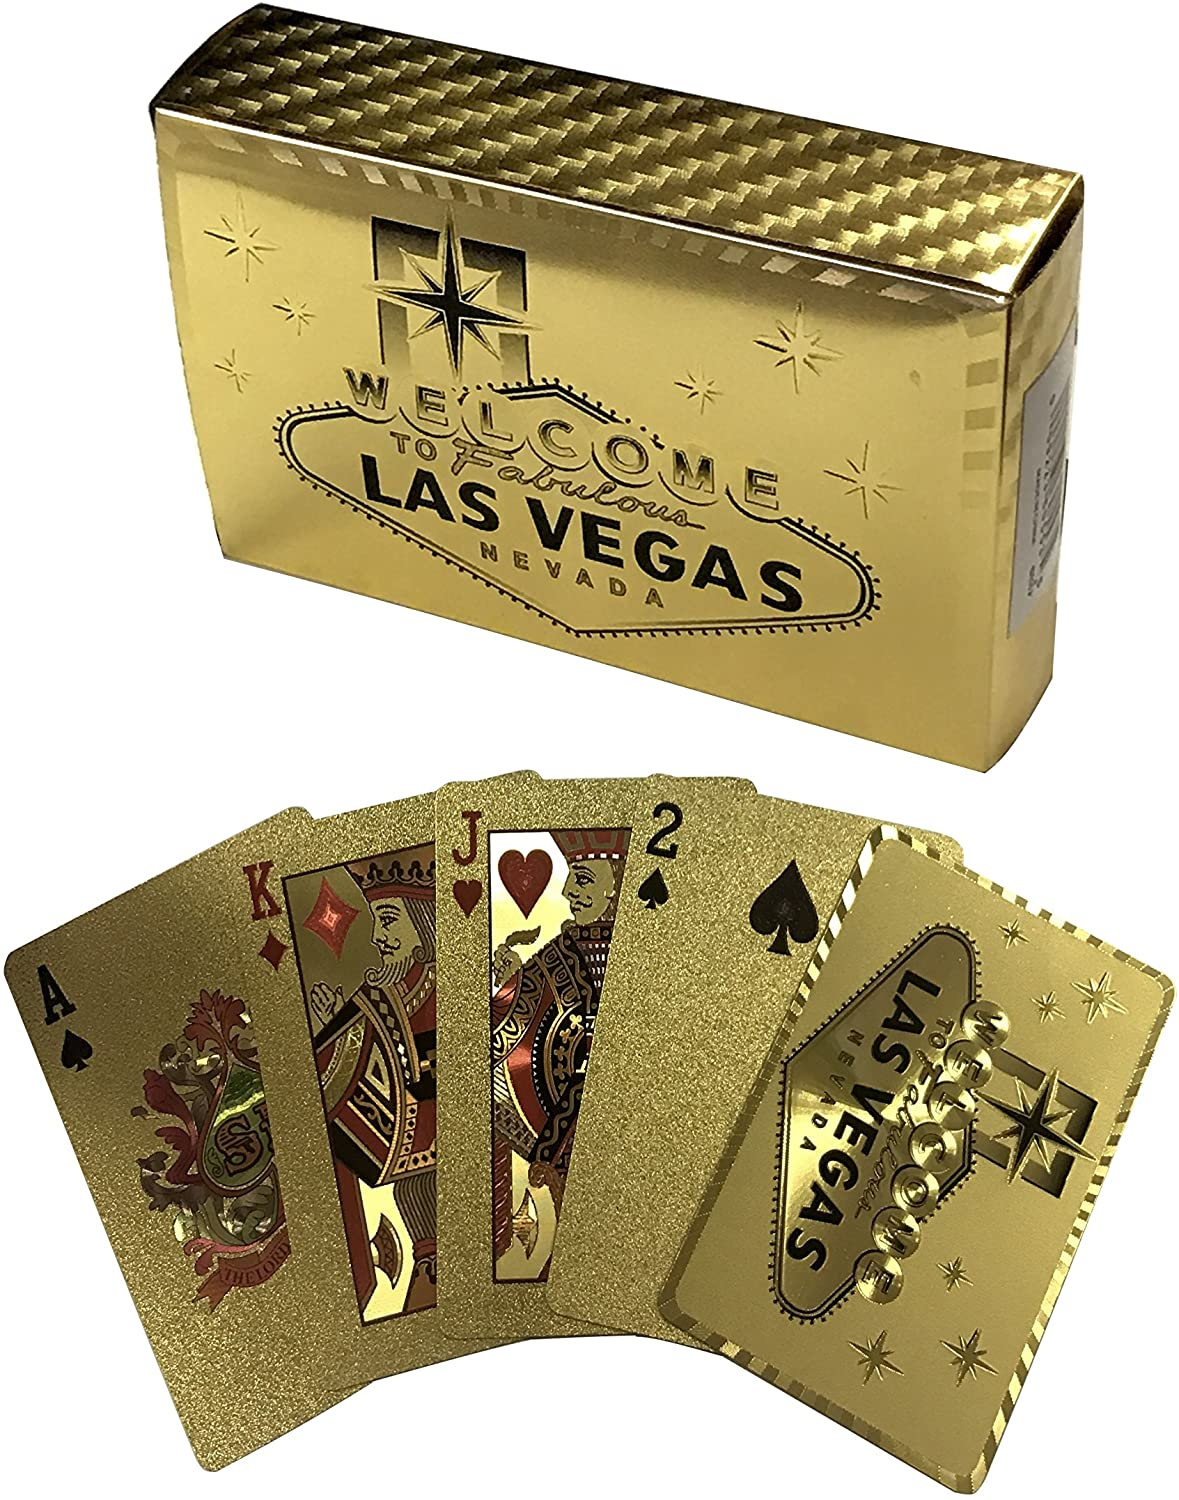 Welcome to Fabulous LAS Vegas Playing Cards in Shiny Gold (FOIL)